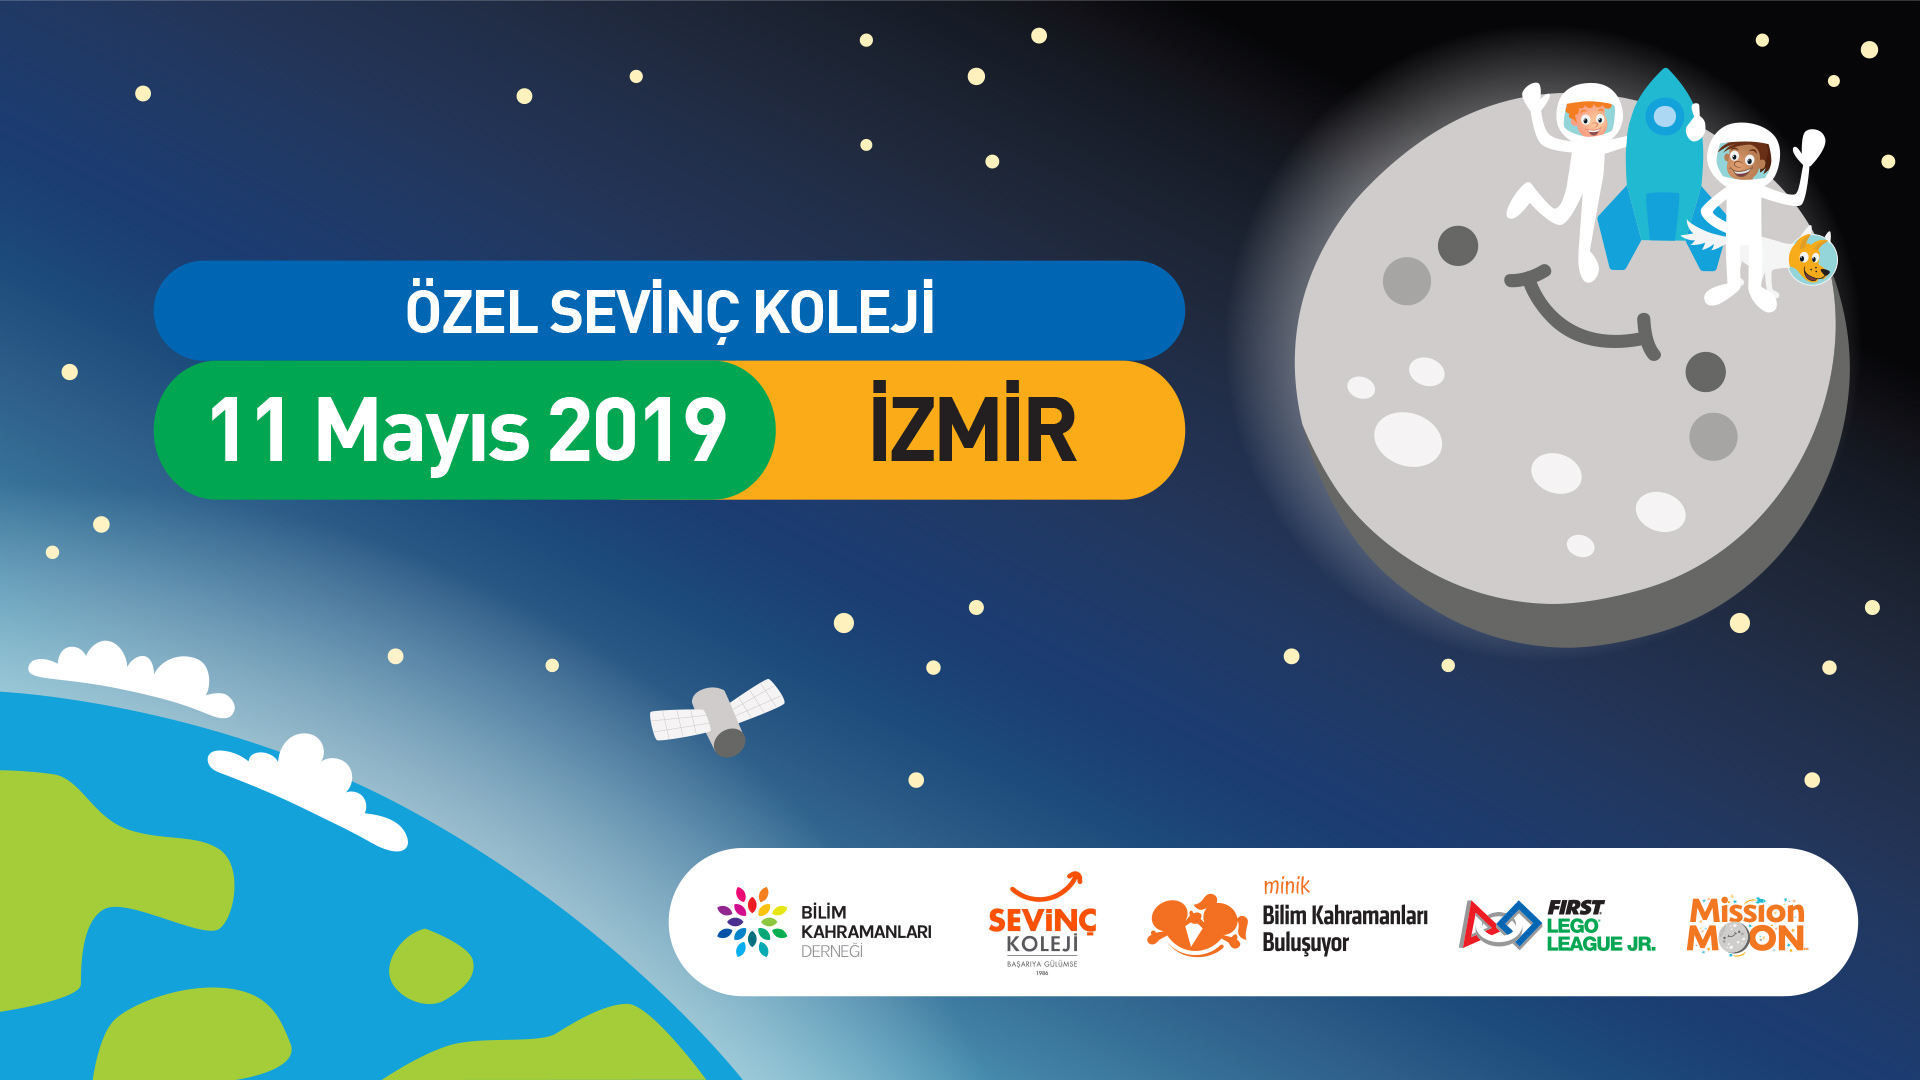 FIRST® LEGO® League Jr. 5. Türkiye Fuarı